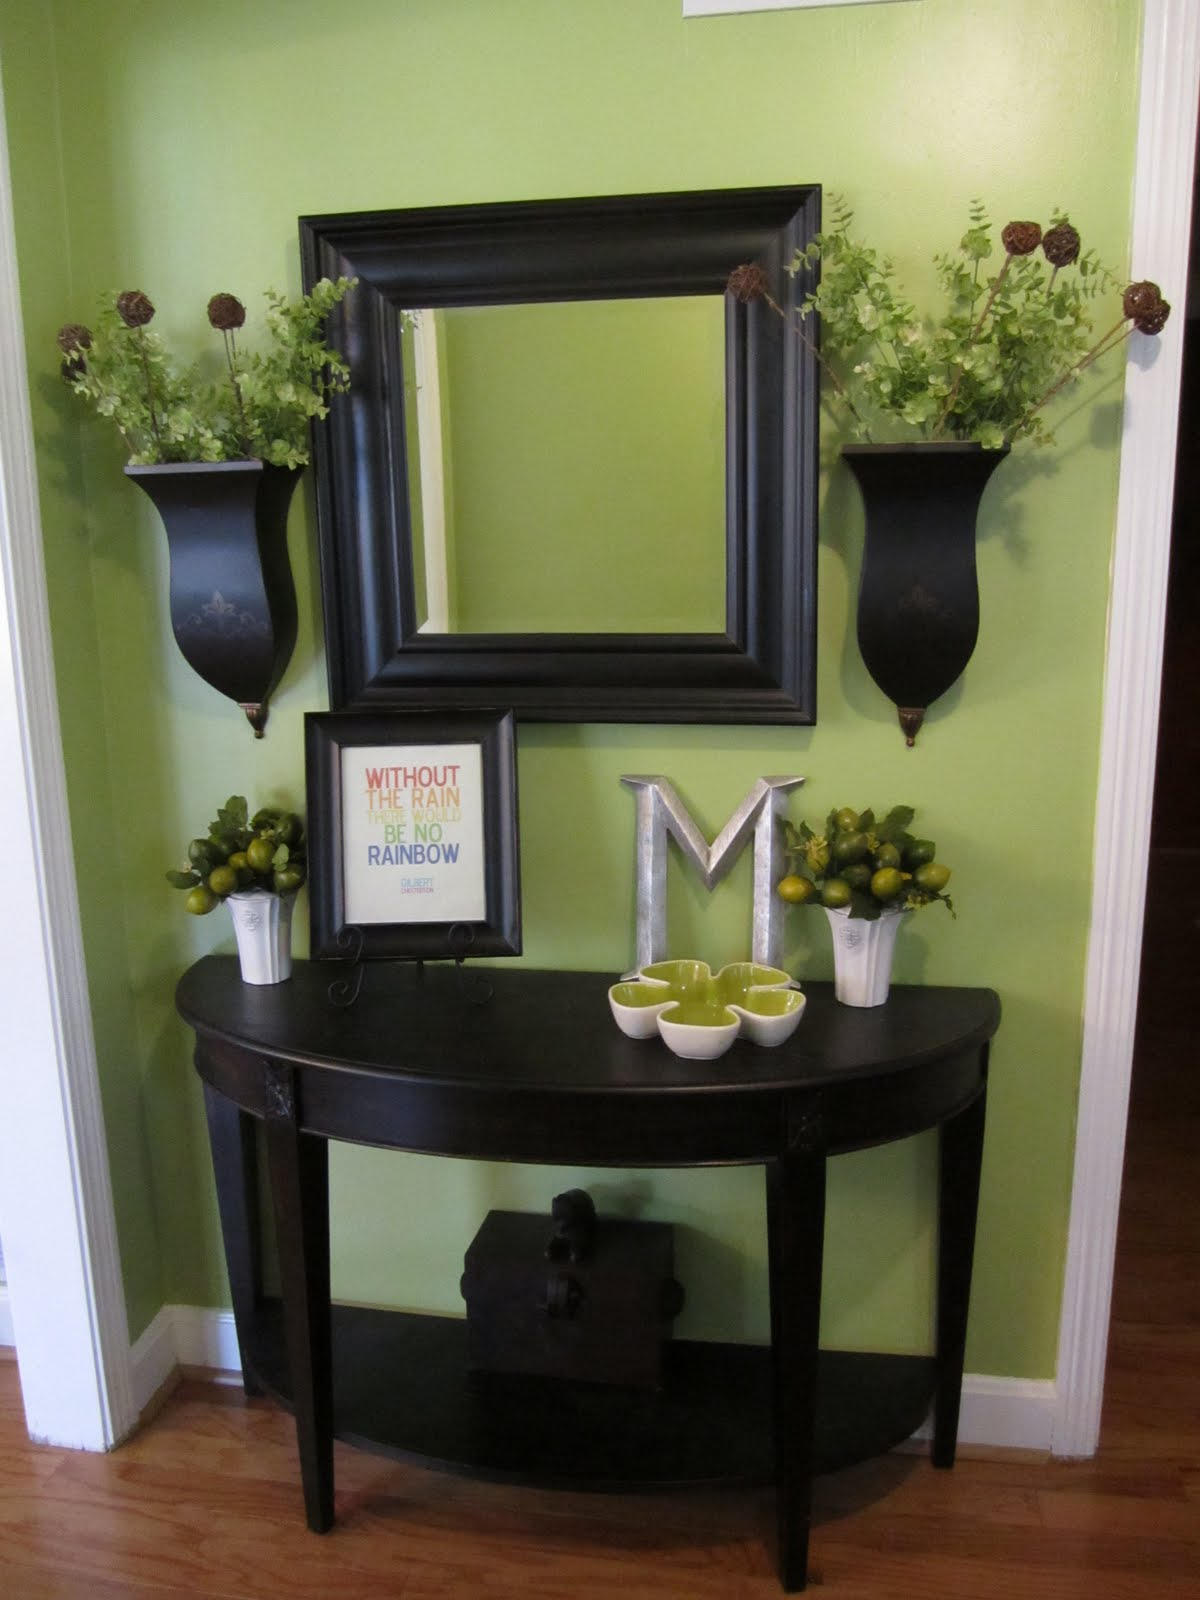 Foyer Entryway Ideas : Entryway ideas for school interior home design